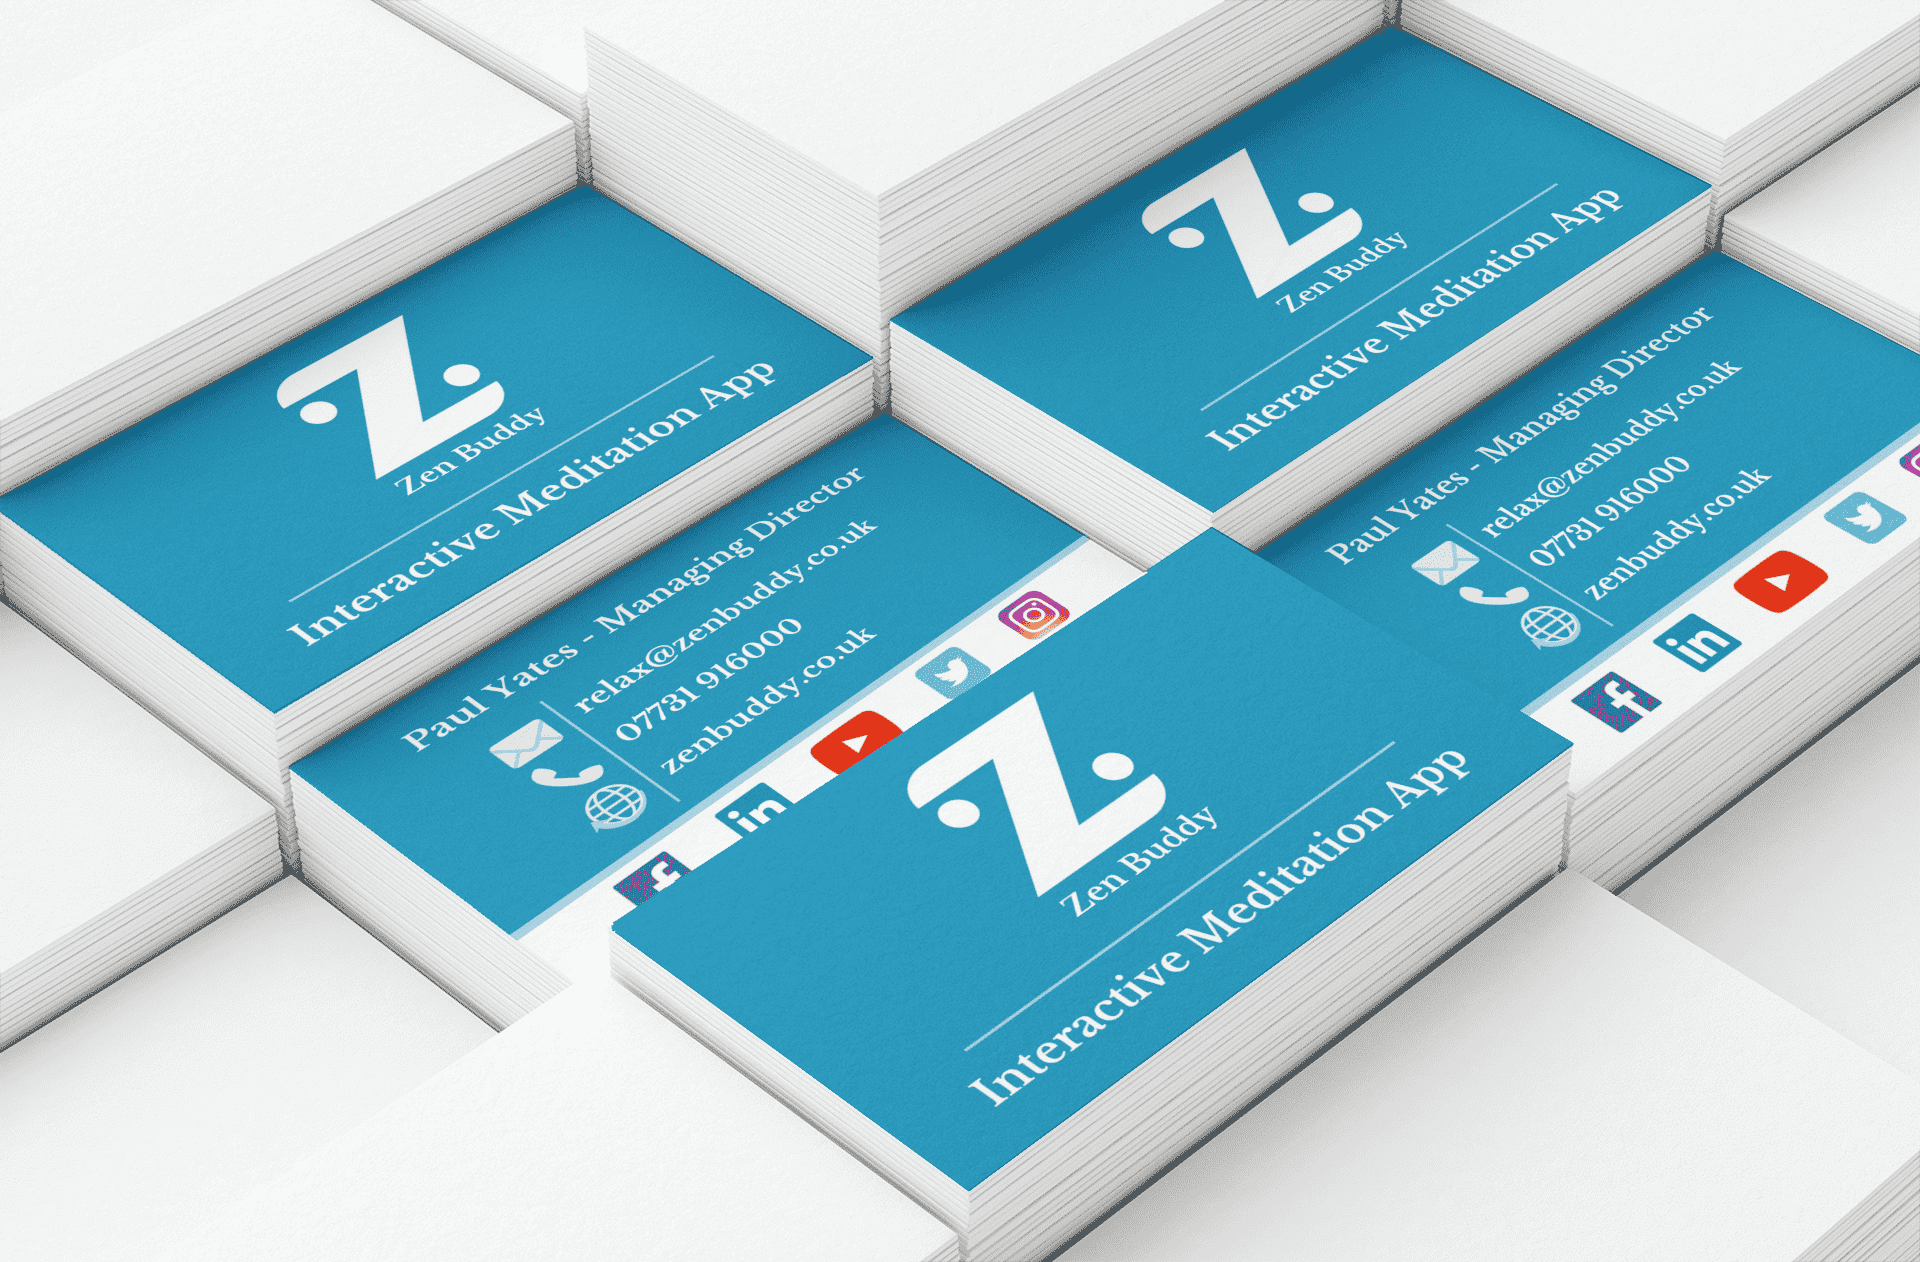 Image shows Zen Buddy business cards